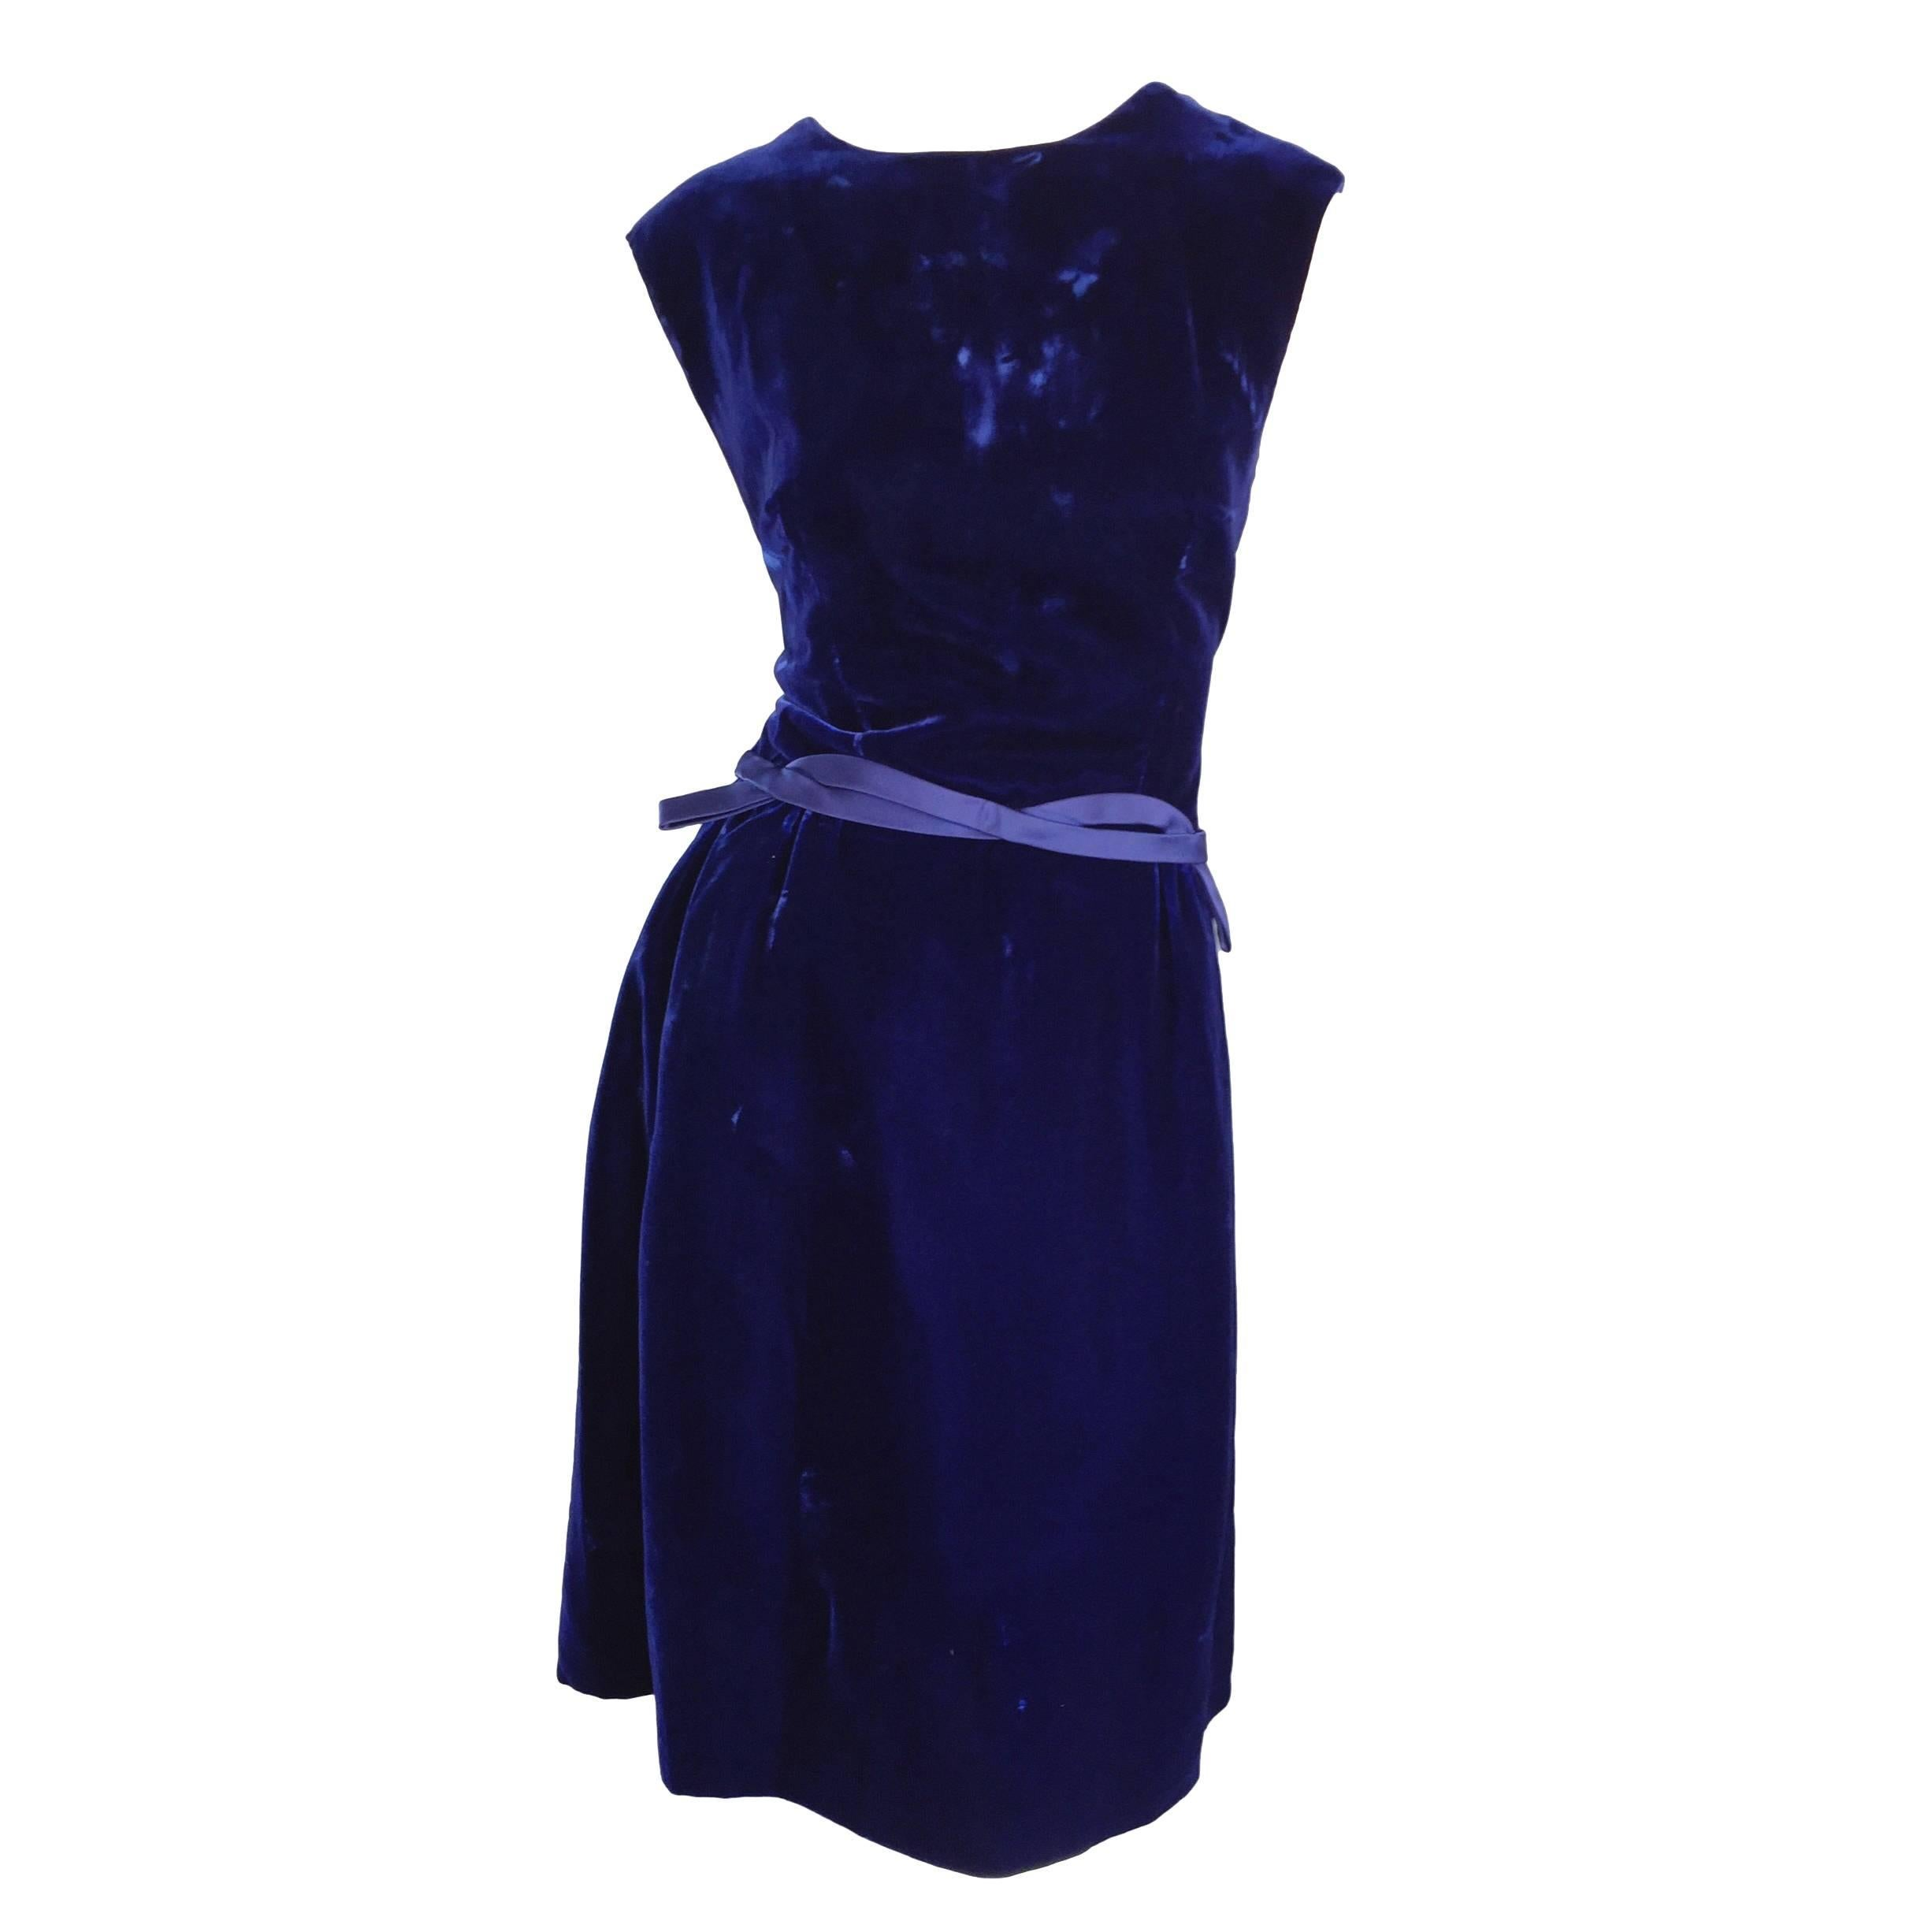 1950s Suzy Perette Royal Blue Velvet 50s Vintage Dress w/ Ribbon Belt Detail